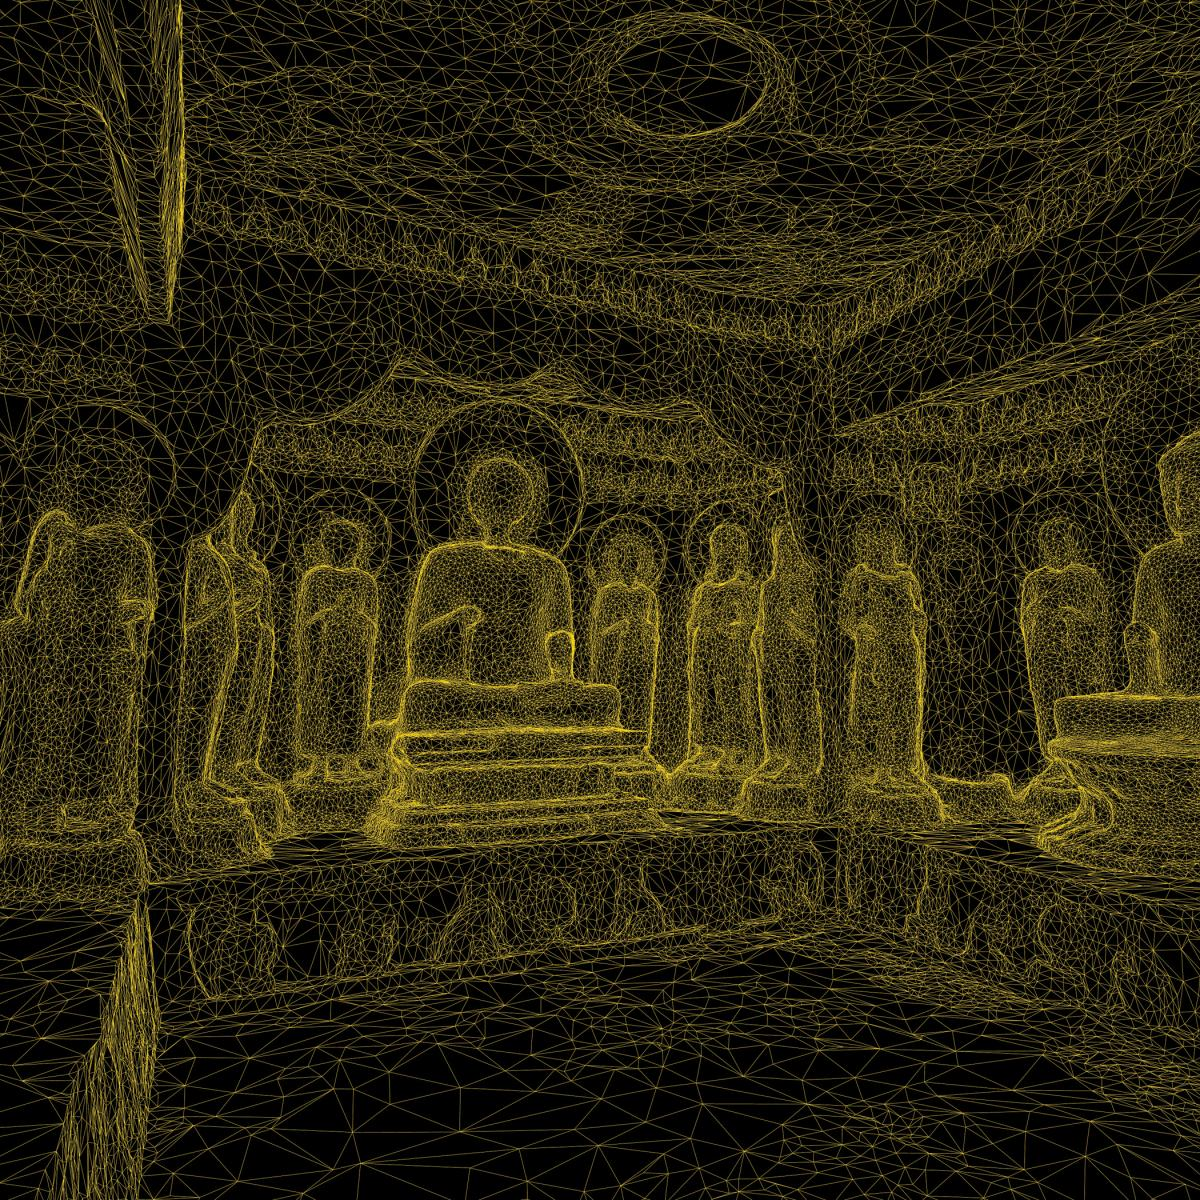 3-D rendering of a Buddhist temple